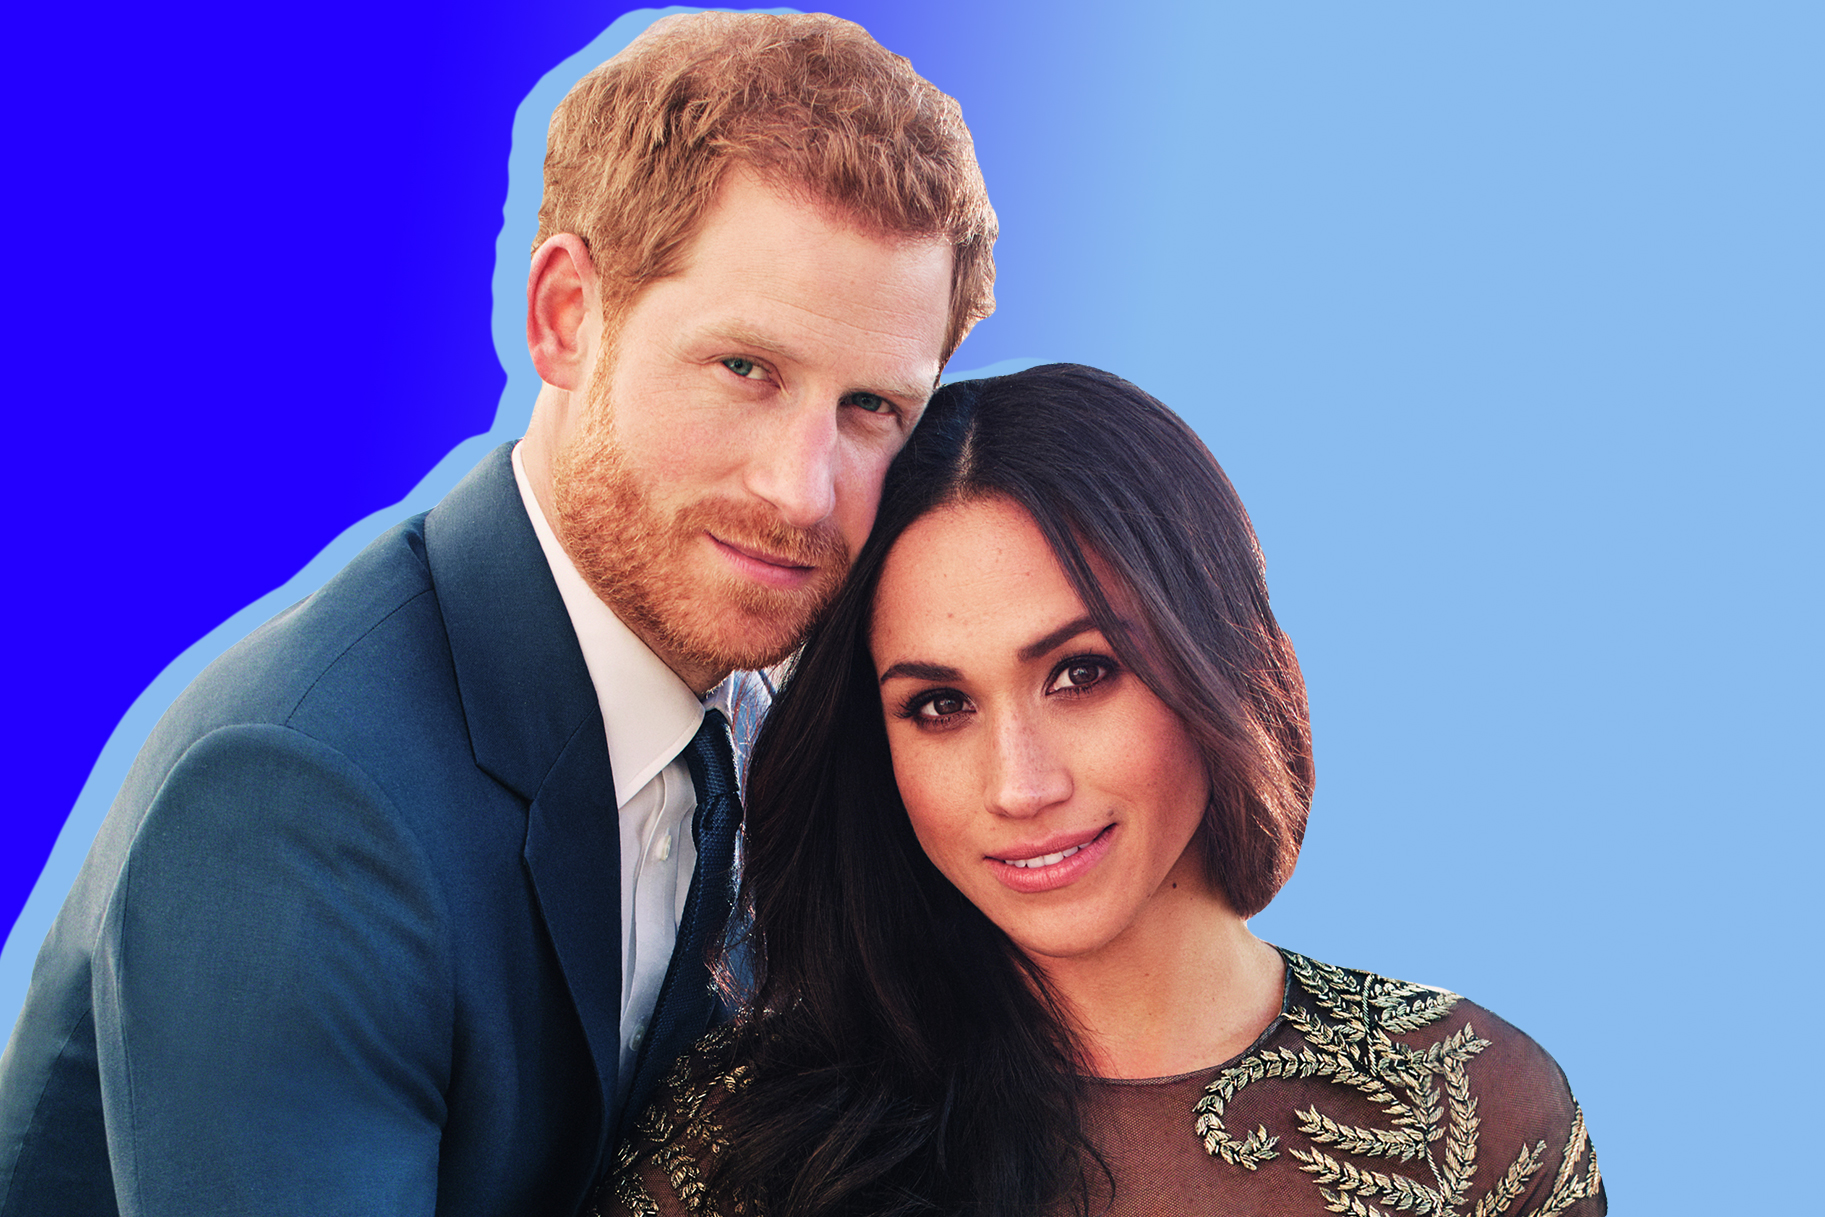 Prince Harry And Meghan Markle Have Asked For Very Non Traditional